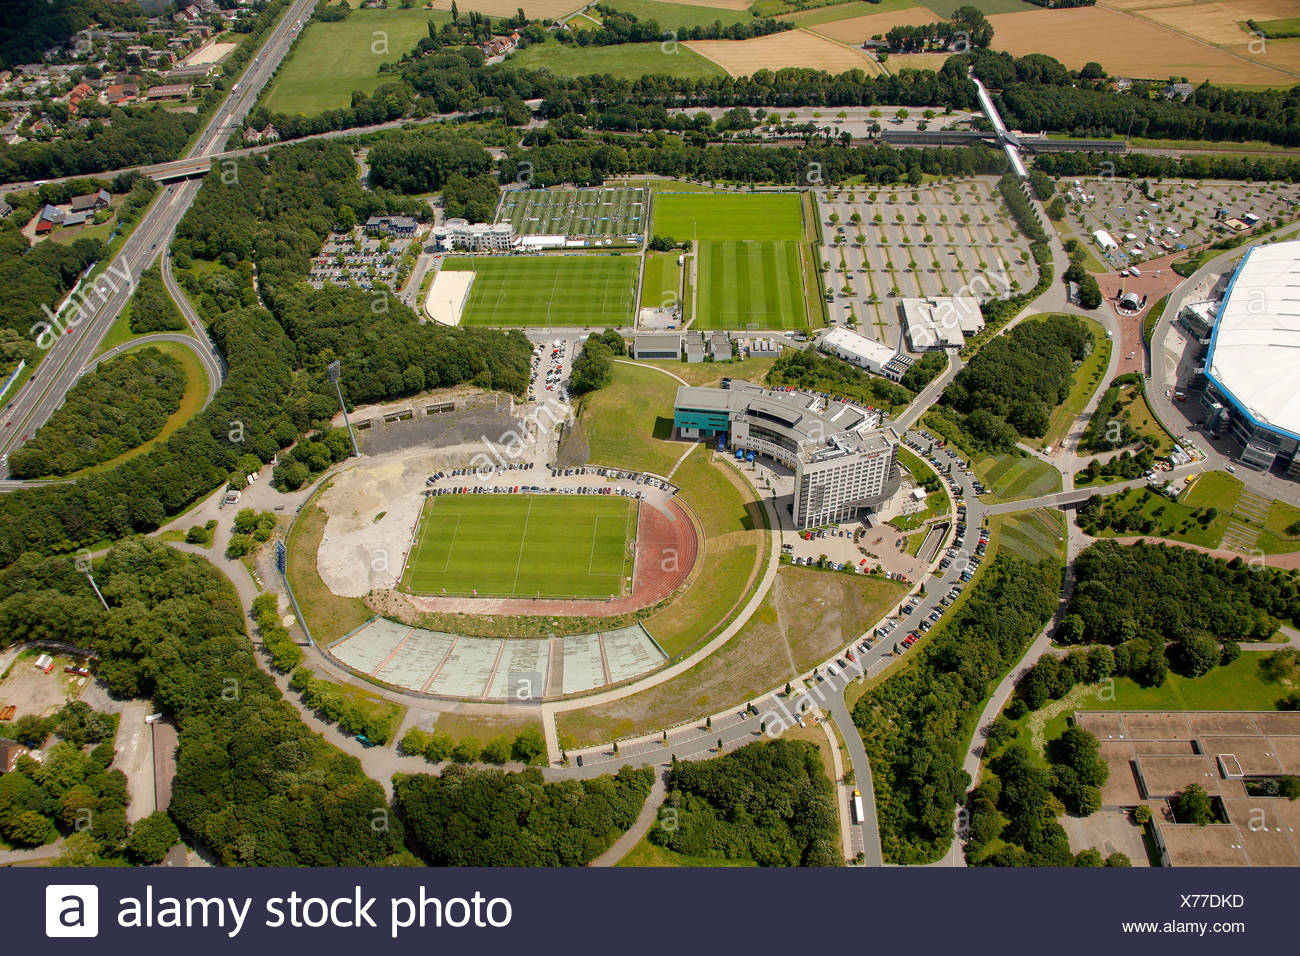 Aerial view, Schalke Arena, S04, football pitches, Gelsenkirchen, Ruhr Area, North Rhine-Westphalia, Germany, Europe - Stock Image